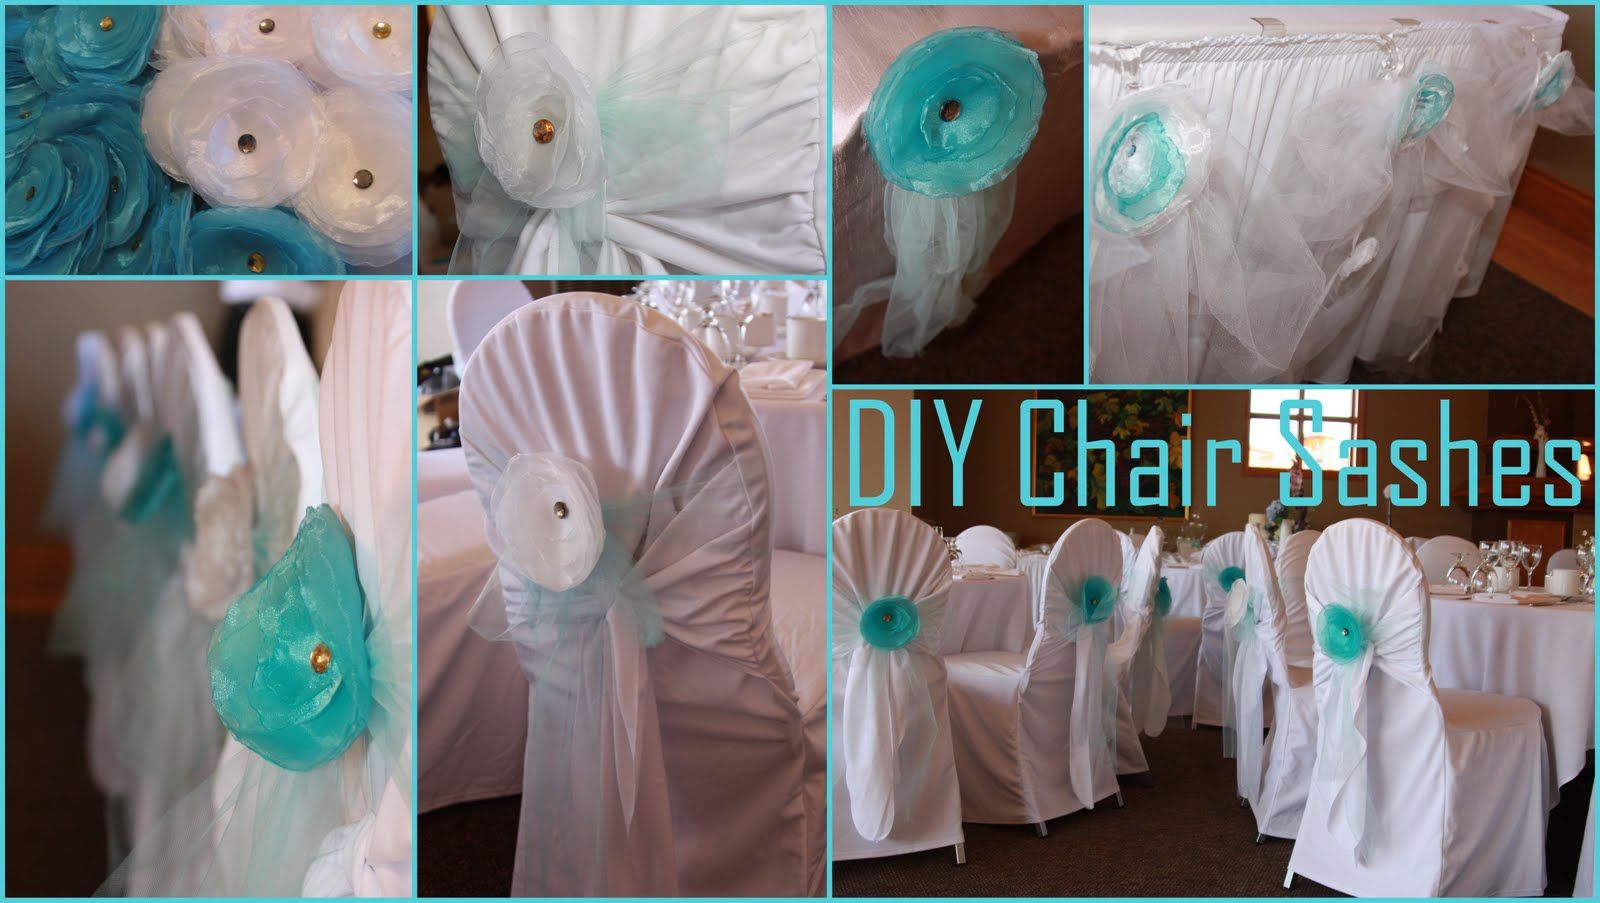 How To Make Chair Sashes John Lewis Loose Covers Sugar N Spice Designer Sweet Tables Diy It S My